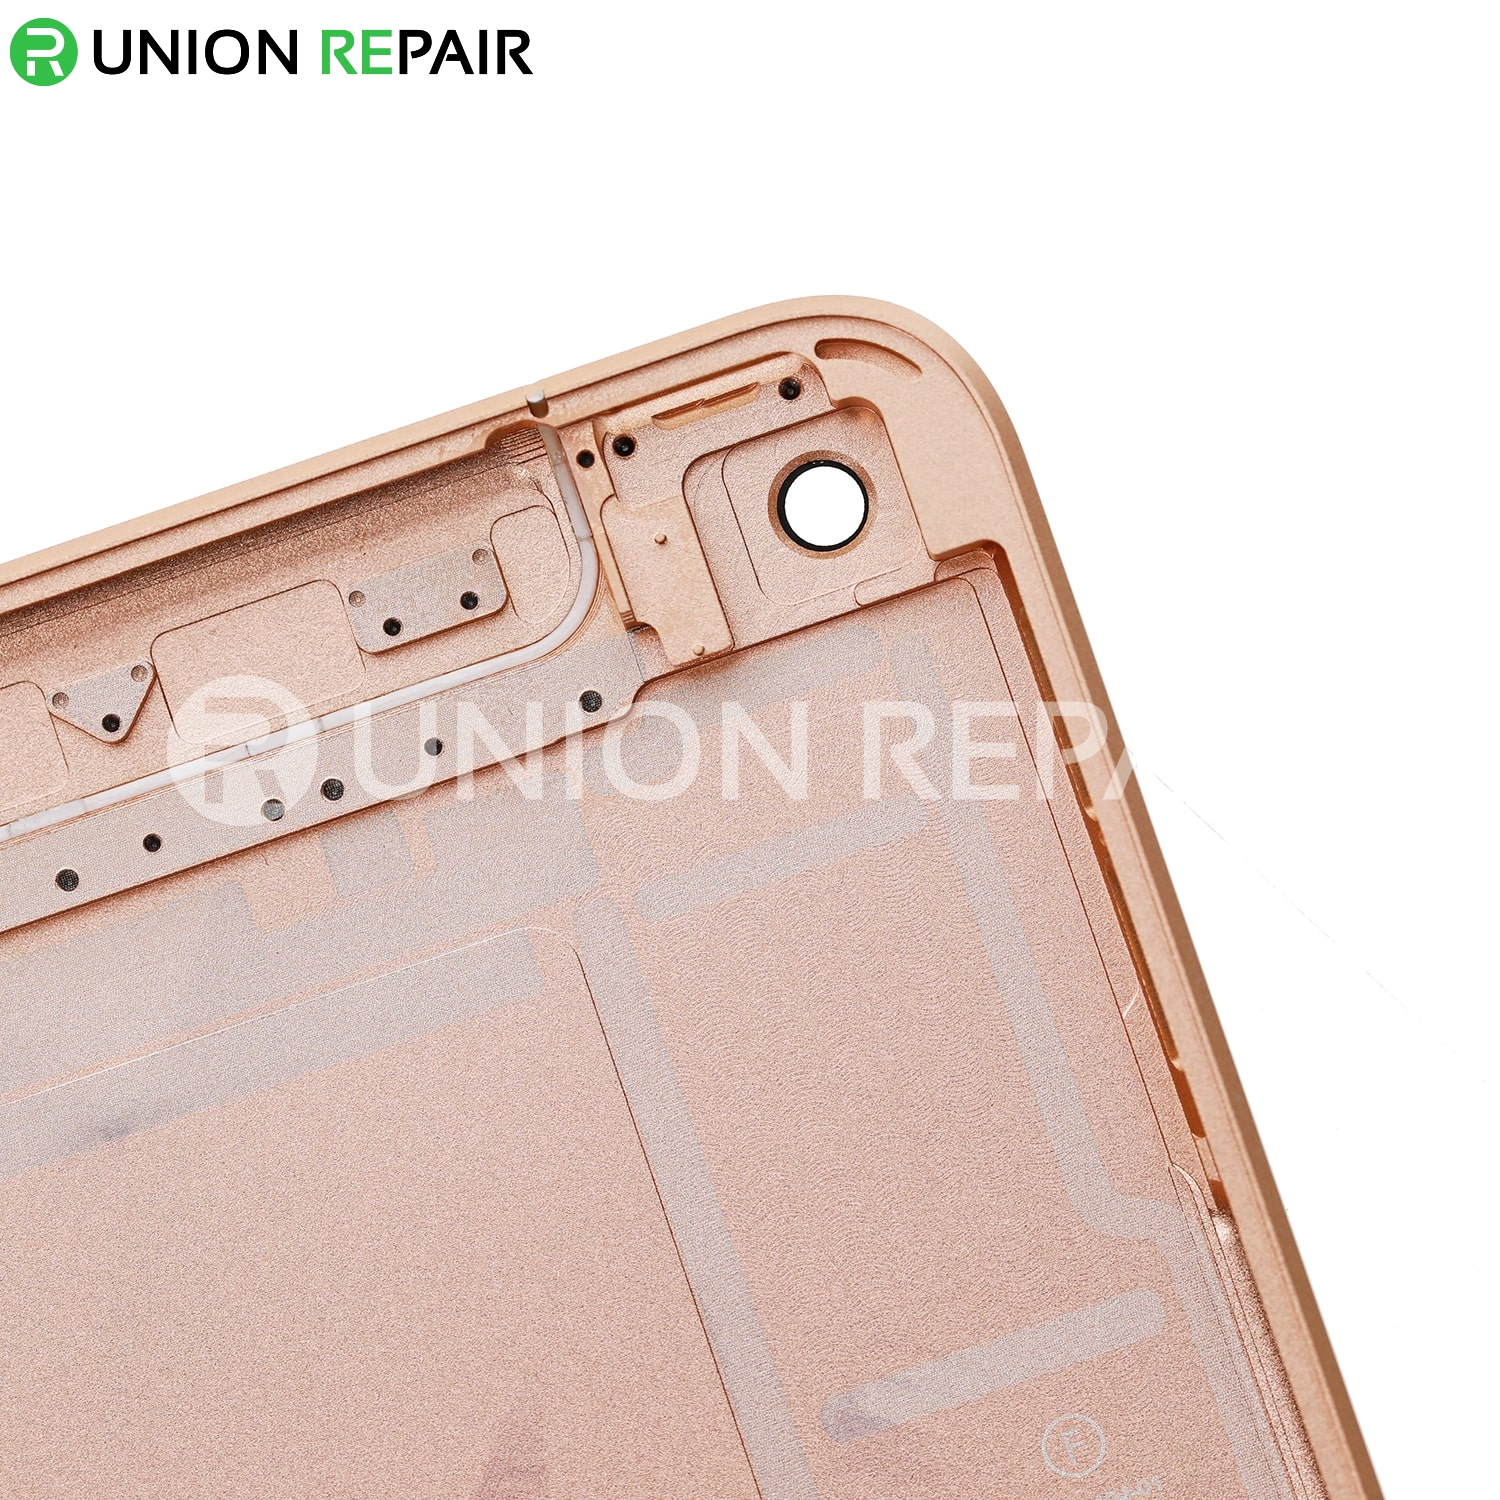 Replacement for iPad Mini 5 WiFi+Cellular Back Cover - Gold